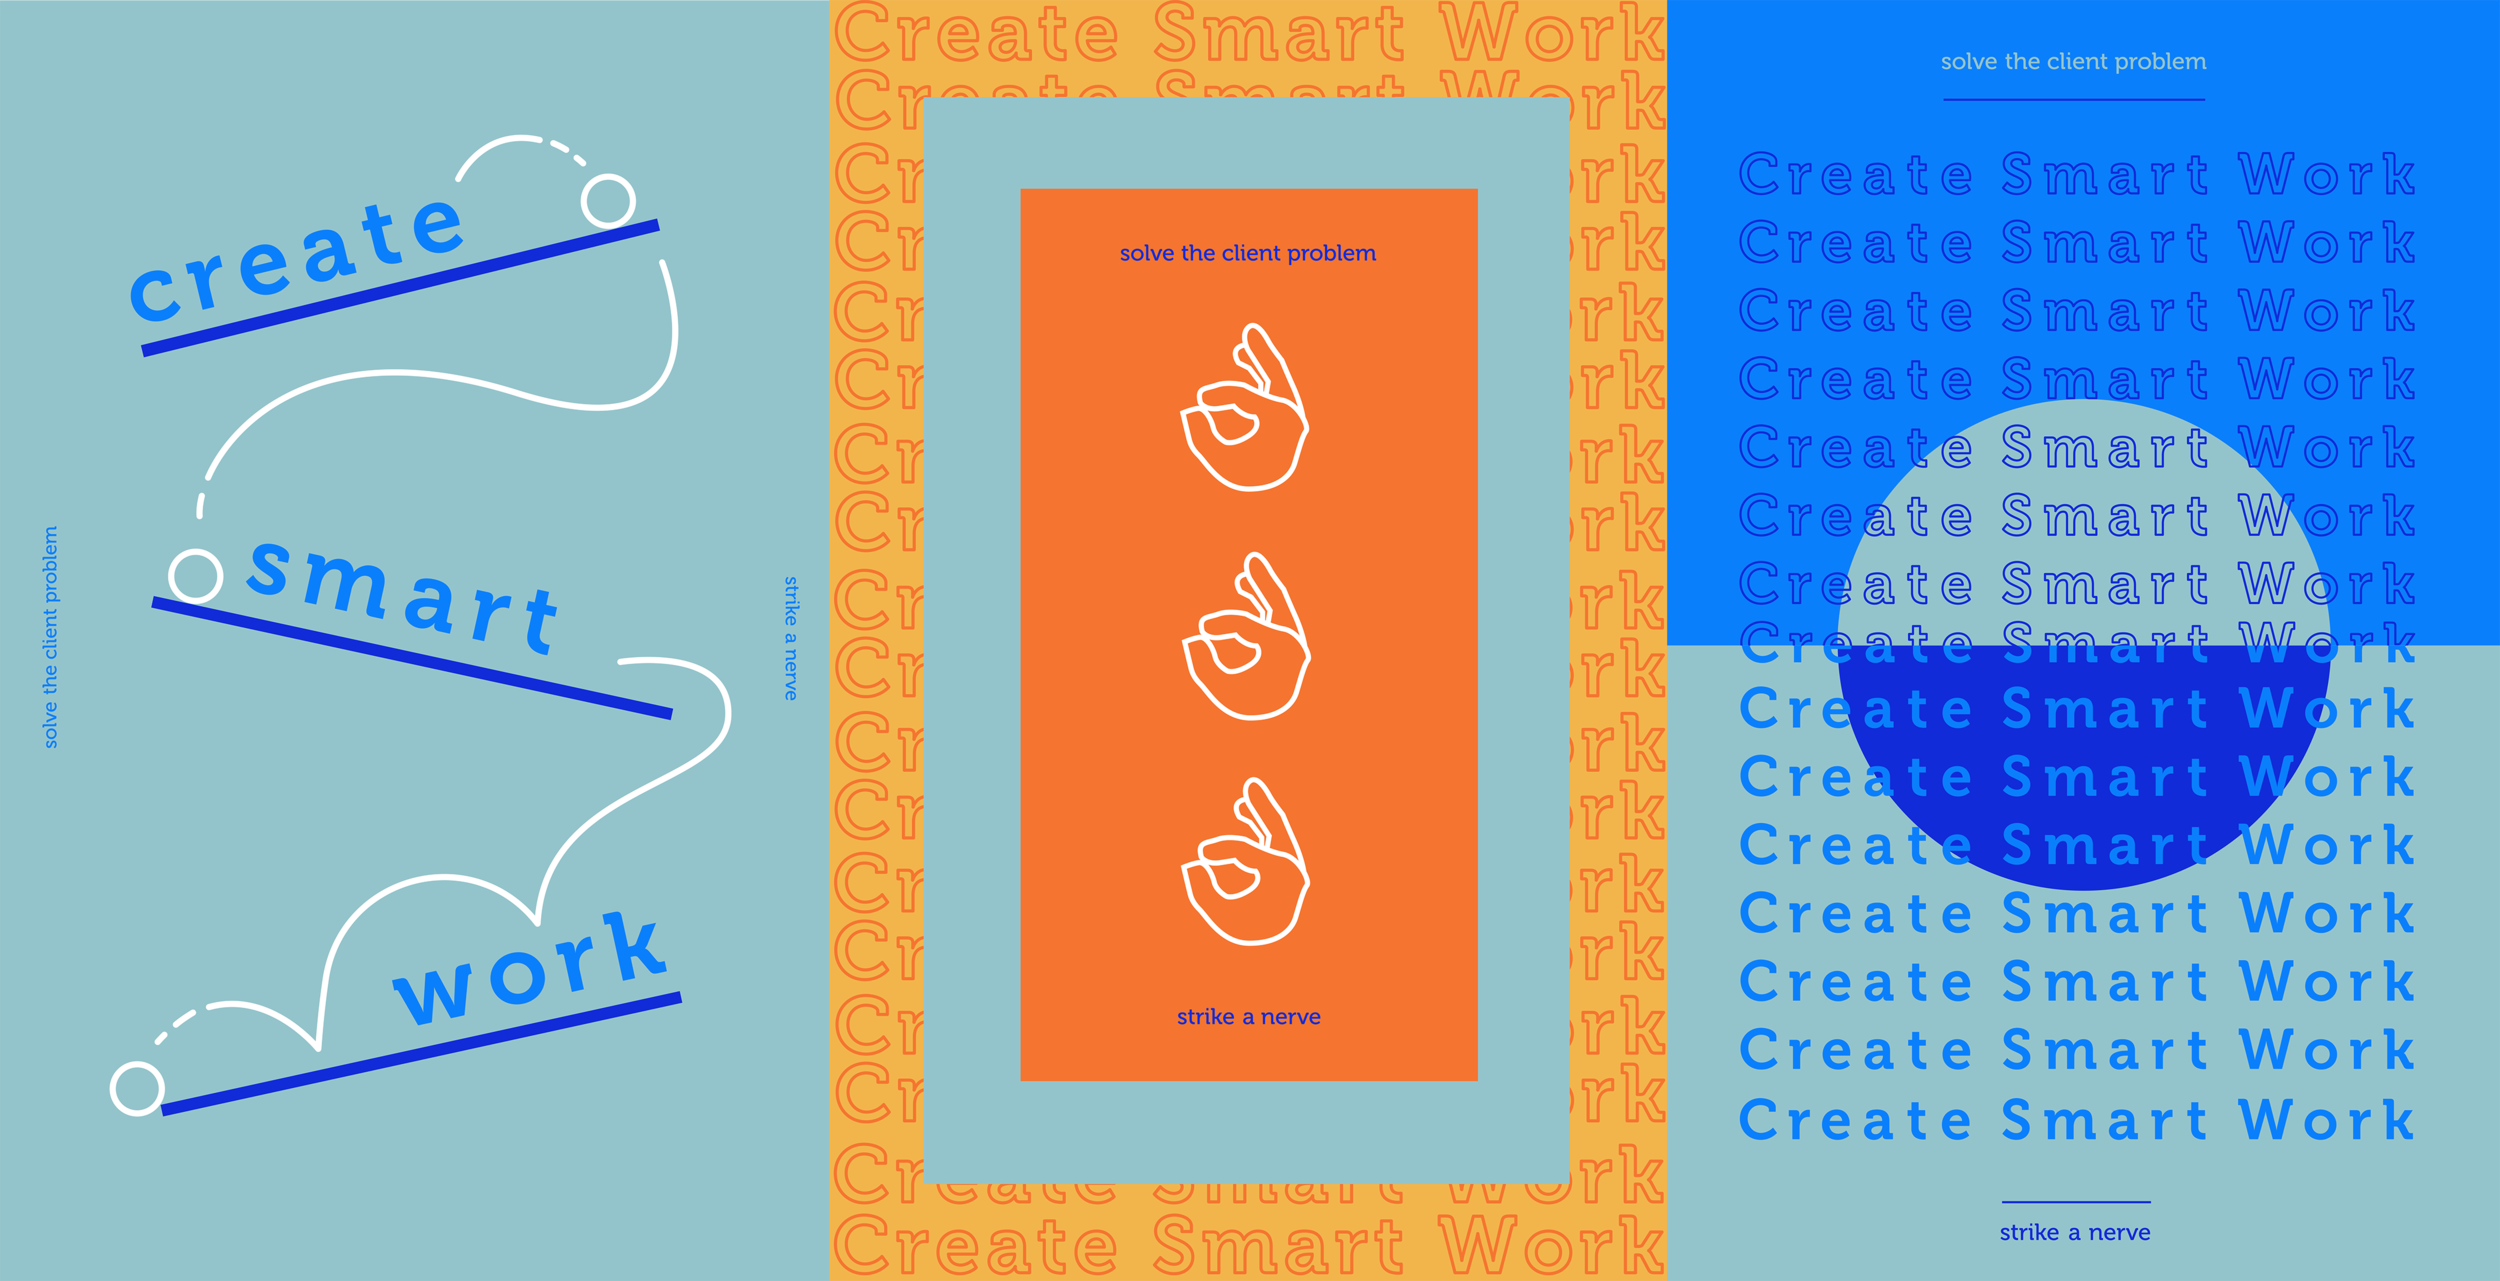 CreateSmartWork_Posters_11x17_V2-11.png